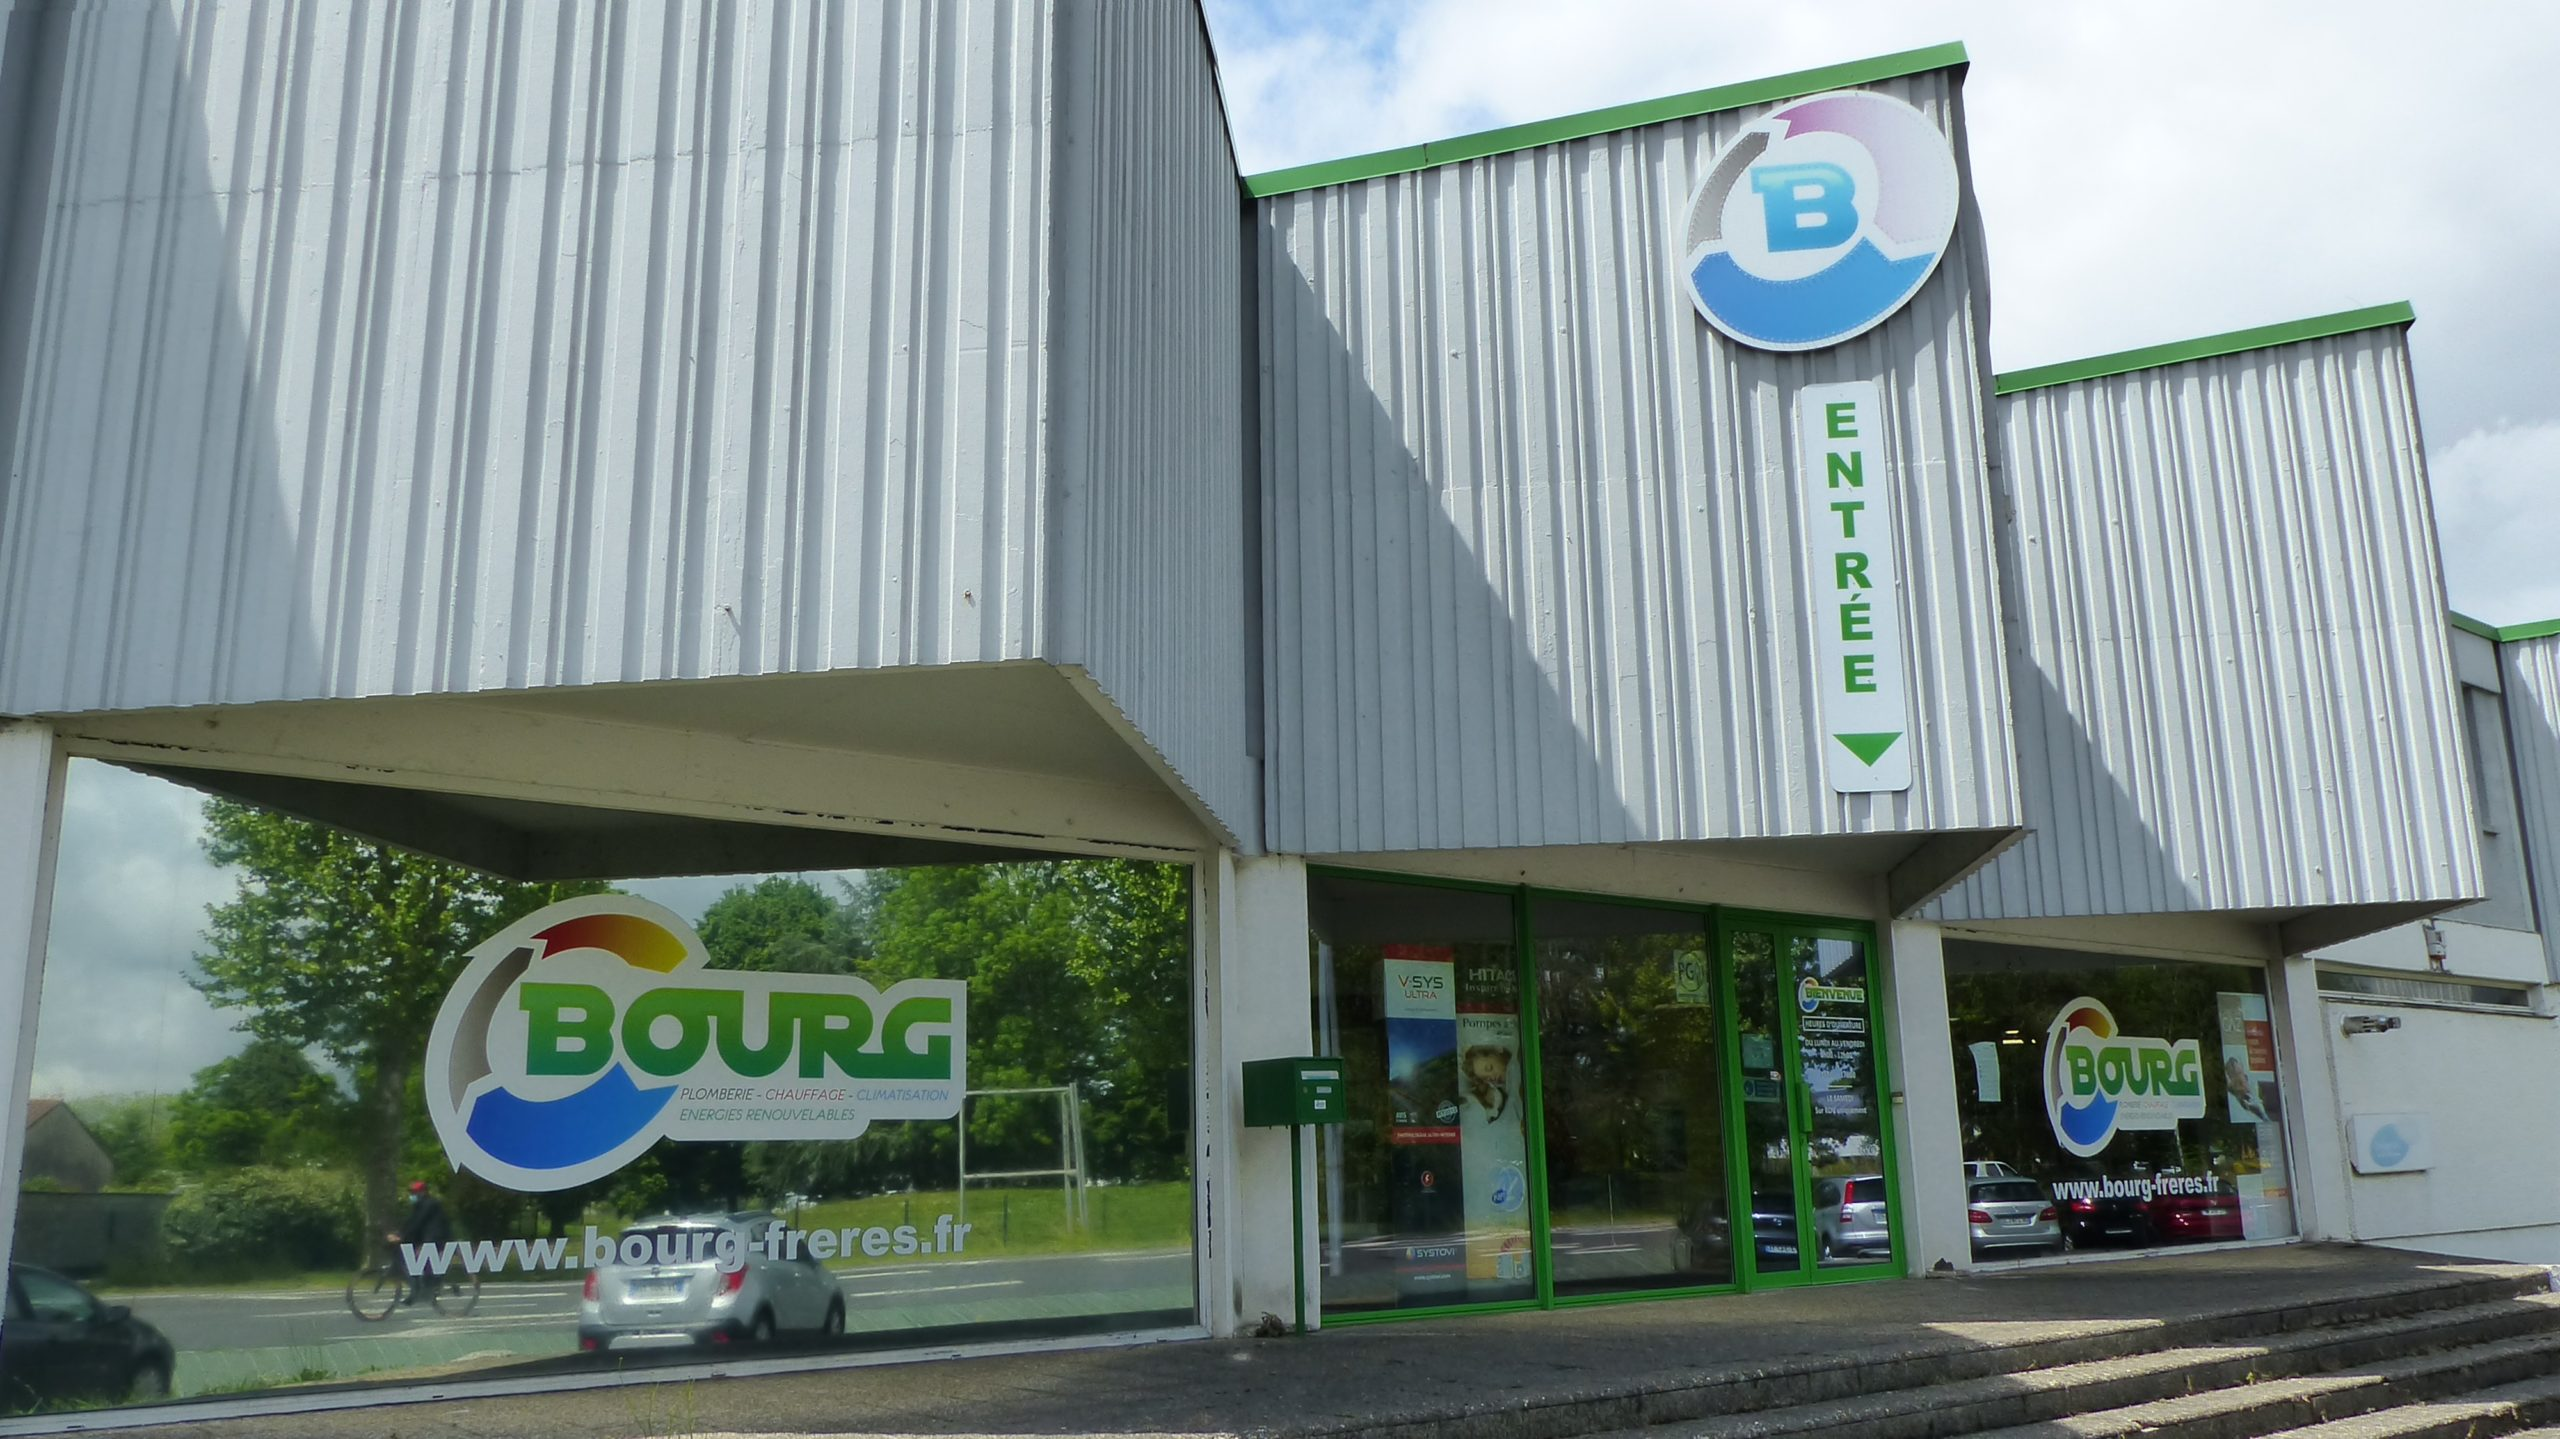 bourg freres plomberie sanitaire chauffage climatisation energie renouvelable pau pyrenees